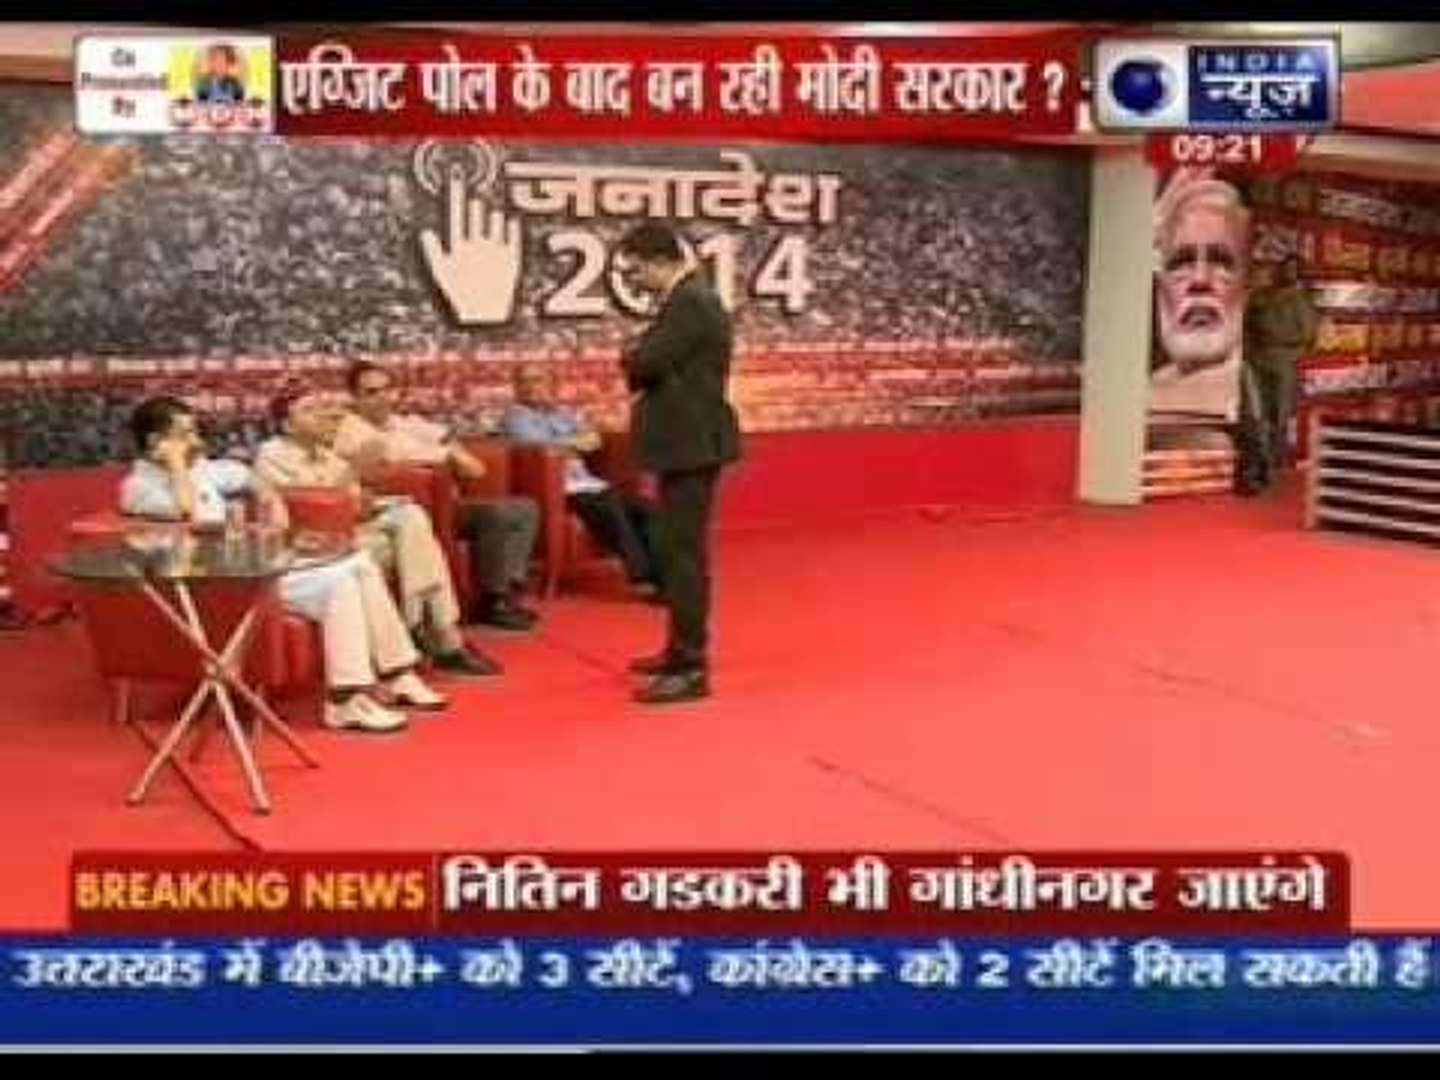 India News exit polls: Know how India voted - Part III